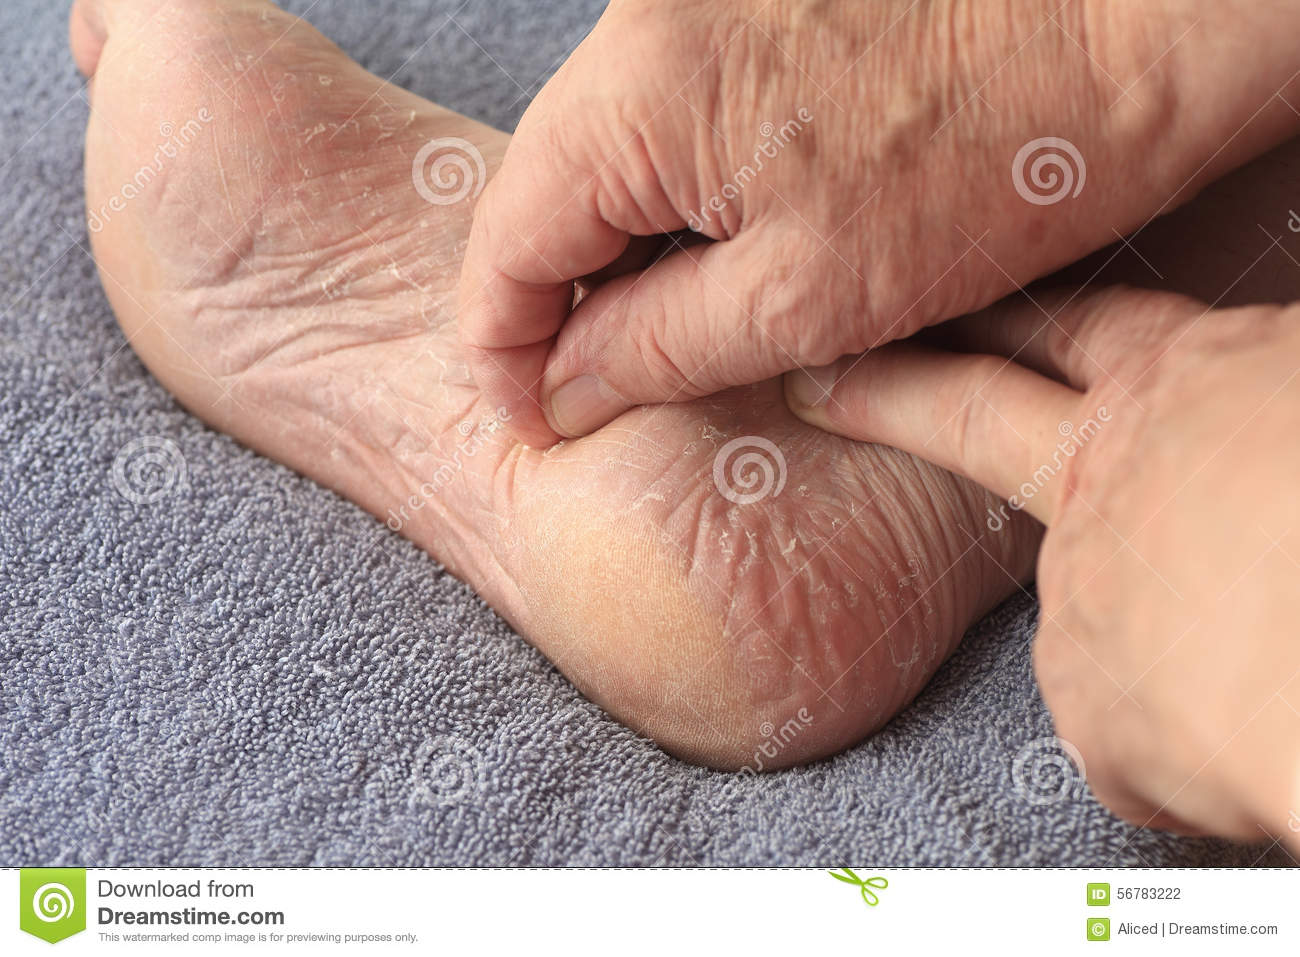 Apologise, Dry sore thumbs athletes foot symptoms something is